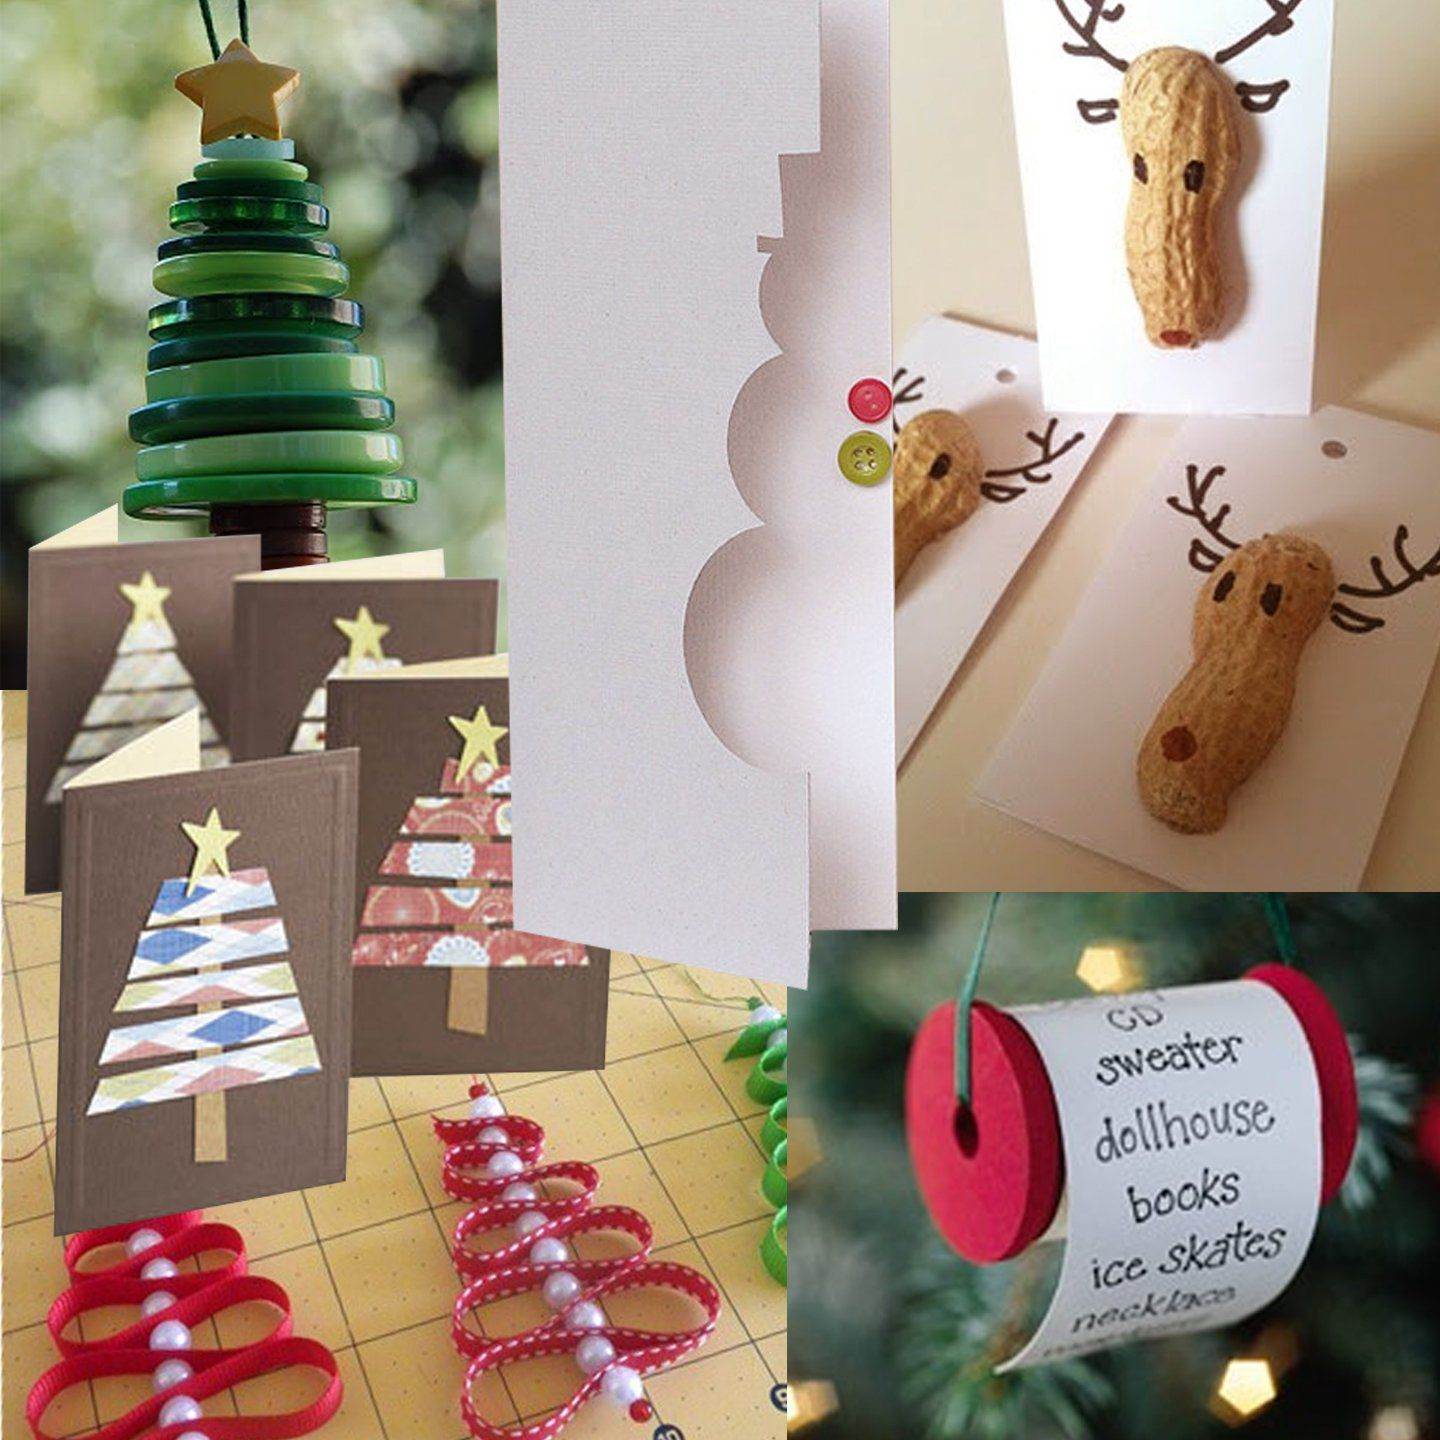 Christmas Room Ideas Diy Decorations Xmas Decorations Homemade Diy Pinterest Christmas